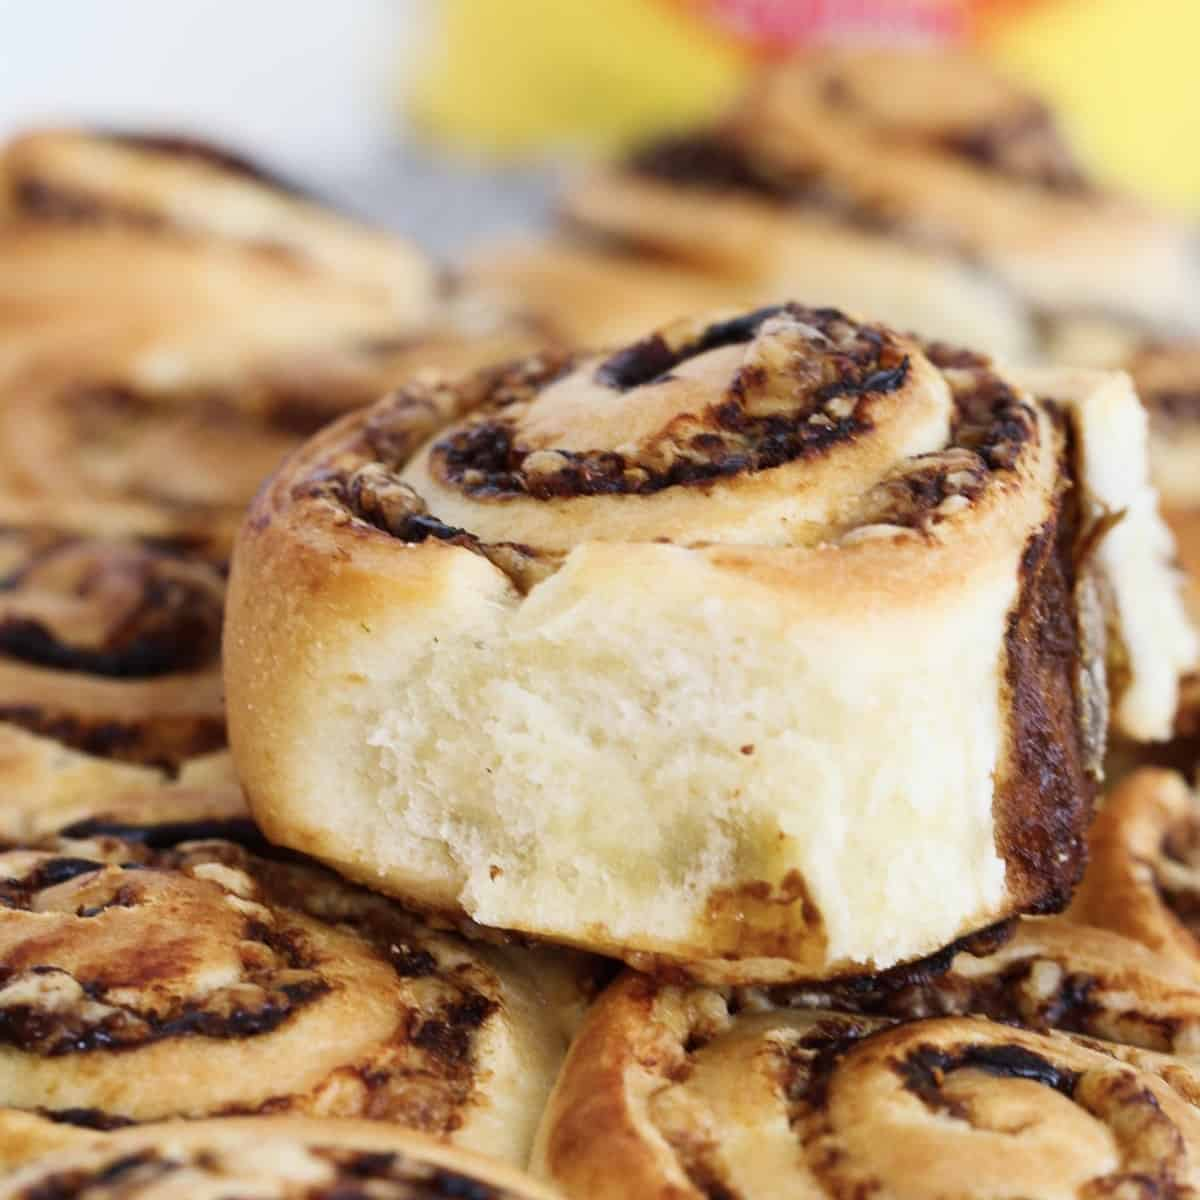 A pile of cheese and vegemite scrolls.